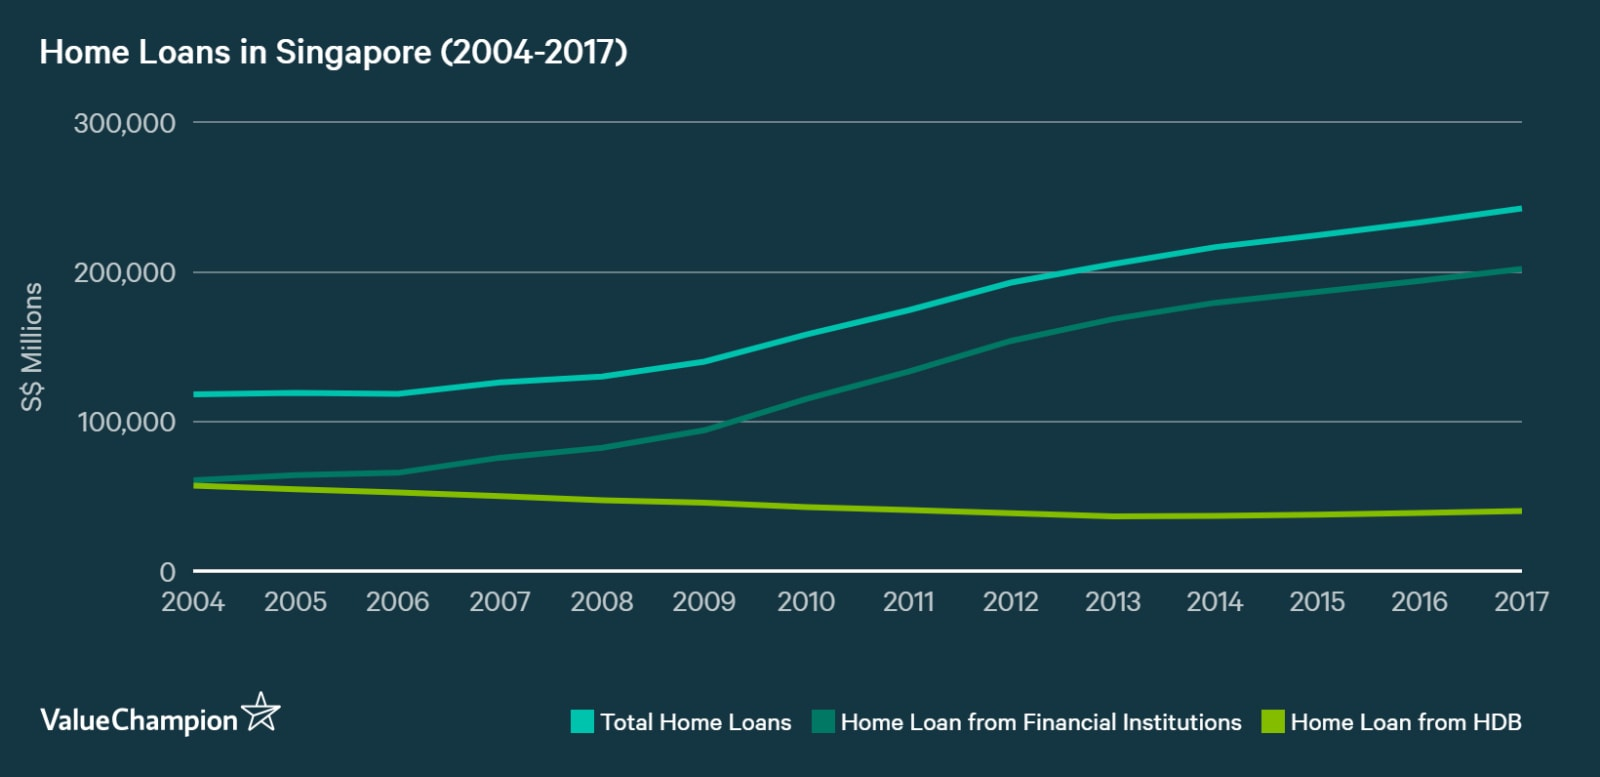 A graph showing the growth of home loans in Singapore from 2004 to 2017, broken into total home loans, home loans from financial institutions and home loans from HDB